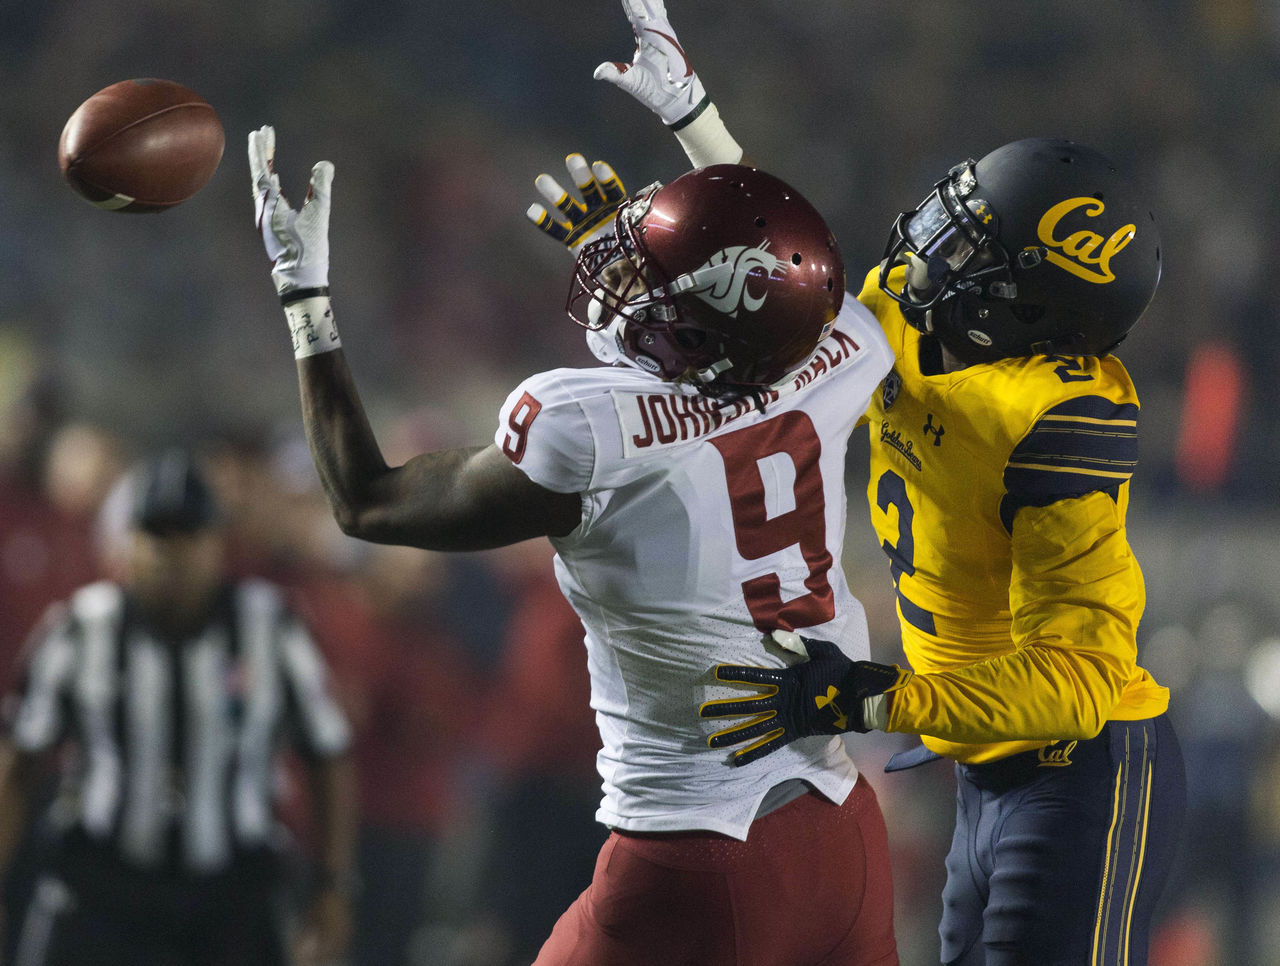 Cropped 2017 10 14t042454z 2104651200 nocid rtrmadp 3 ncaa football washington state at california